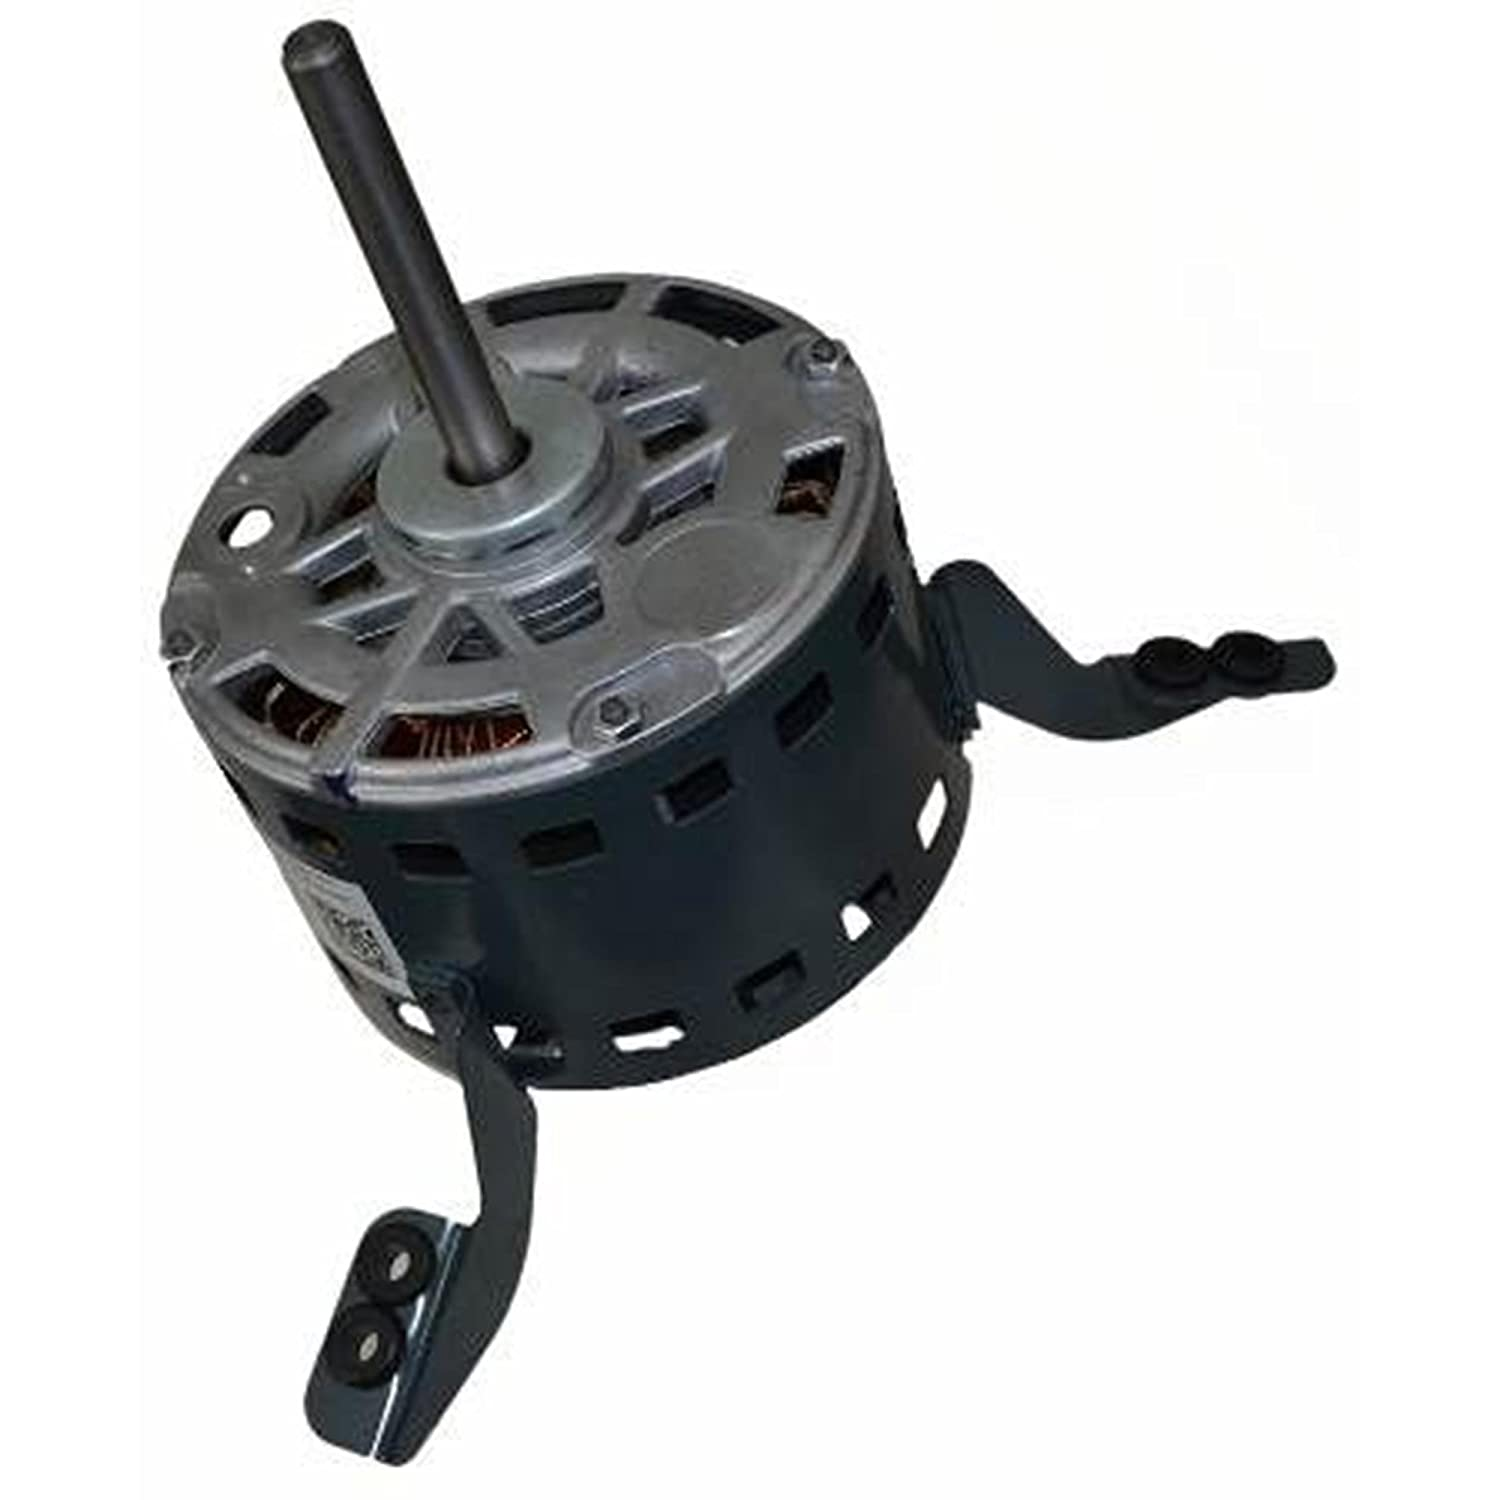 Amazon.com: Goodman B1340021S - Motor de repuesto para ...